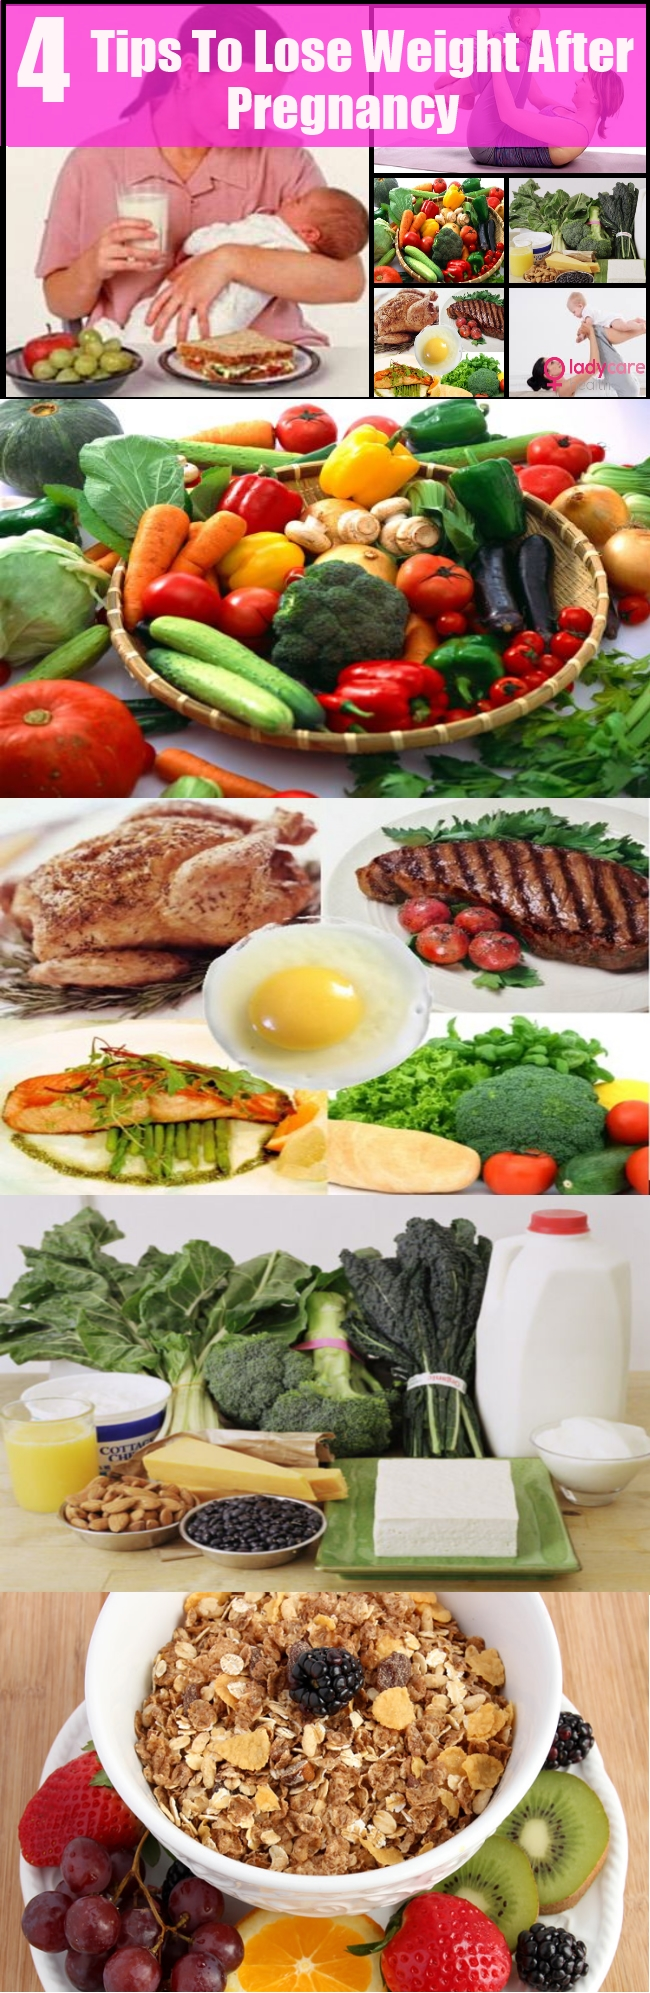 Diets To Lose Weight After Pregnancy